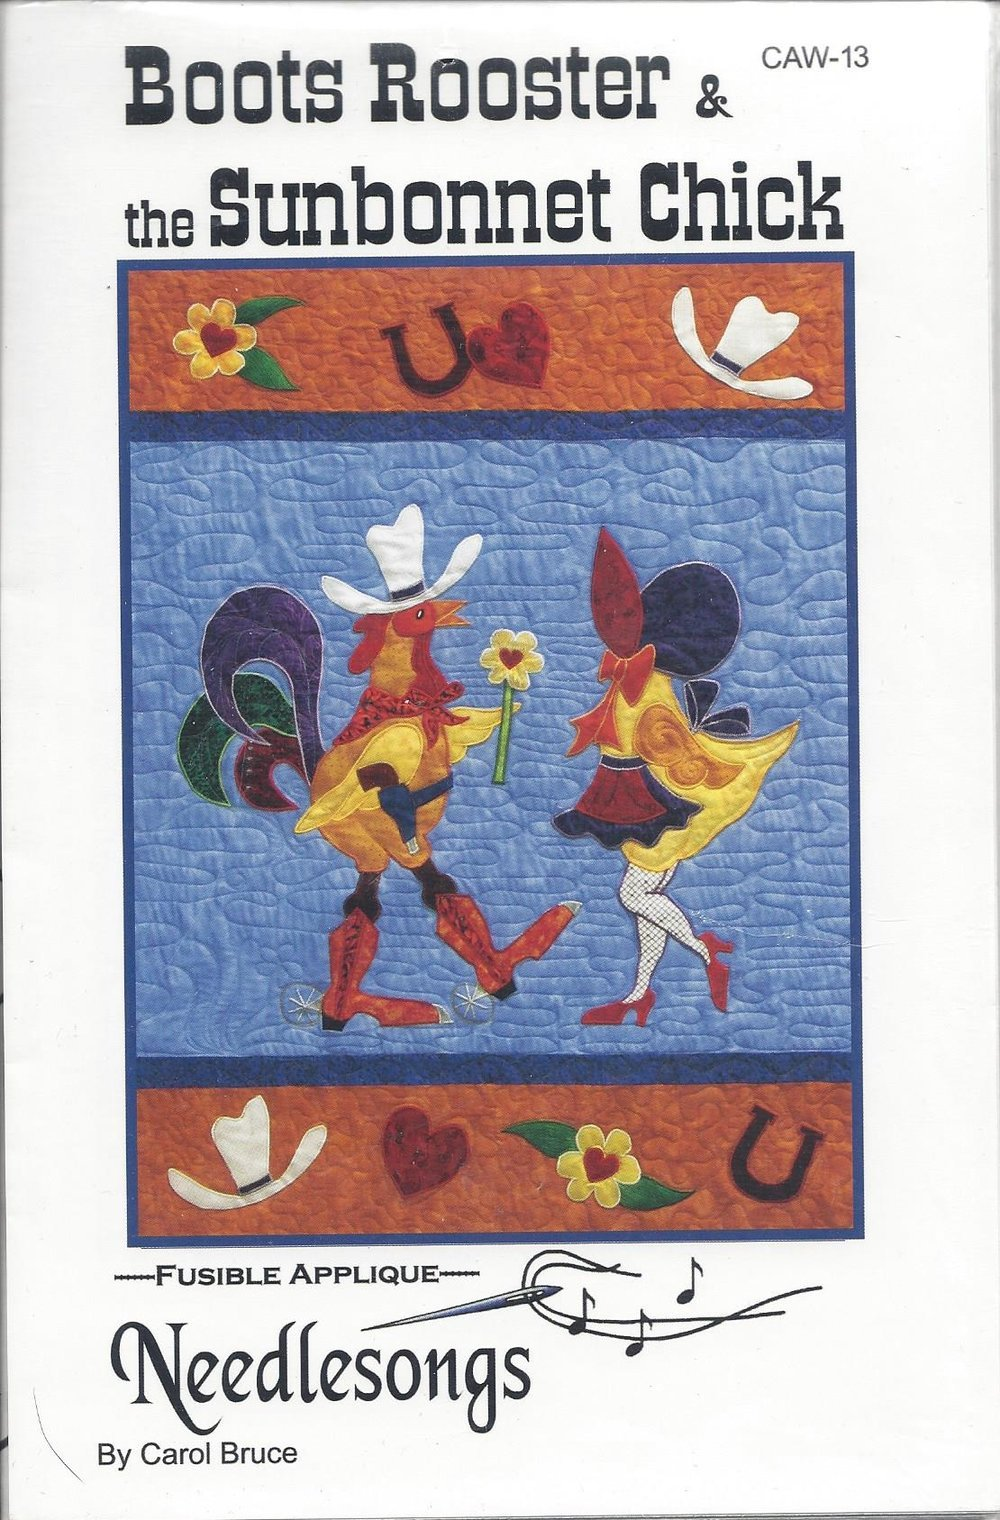 Boots Rooster & the Sunbonnet Chick CAW-13